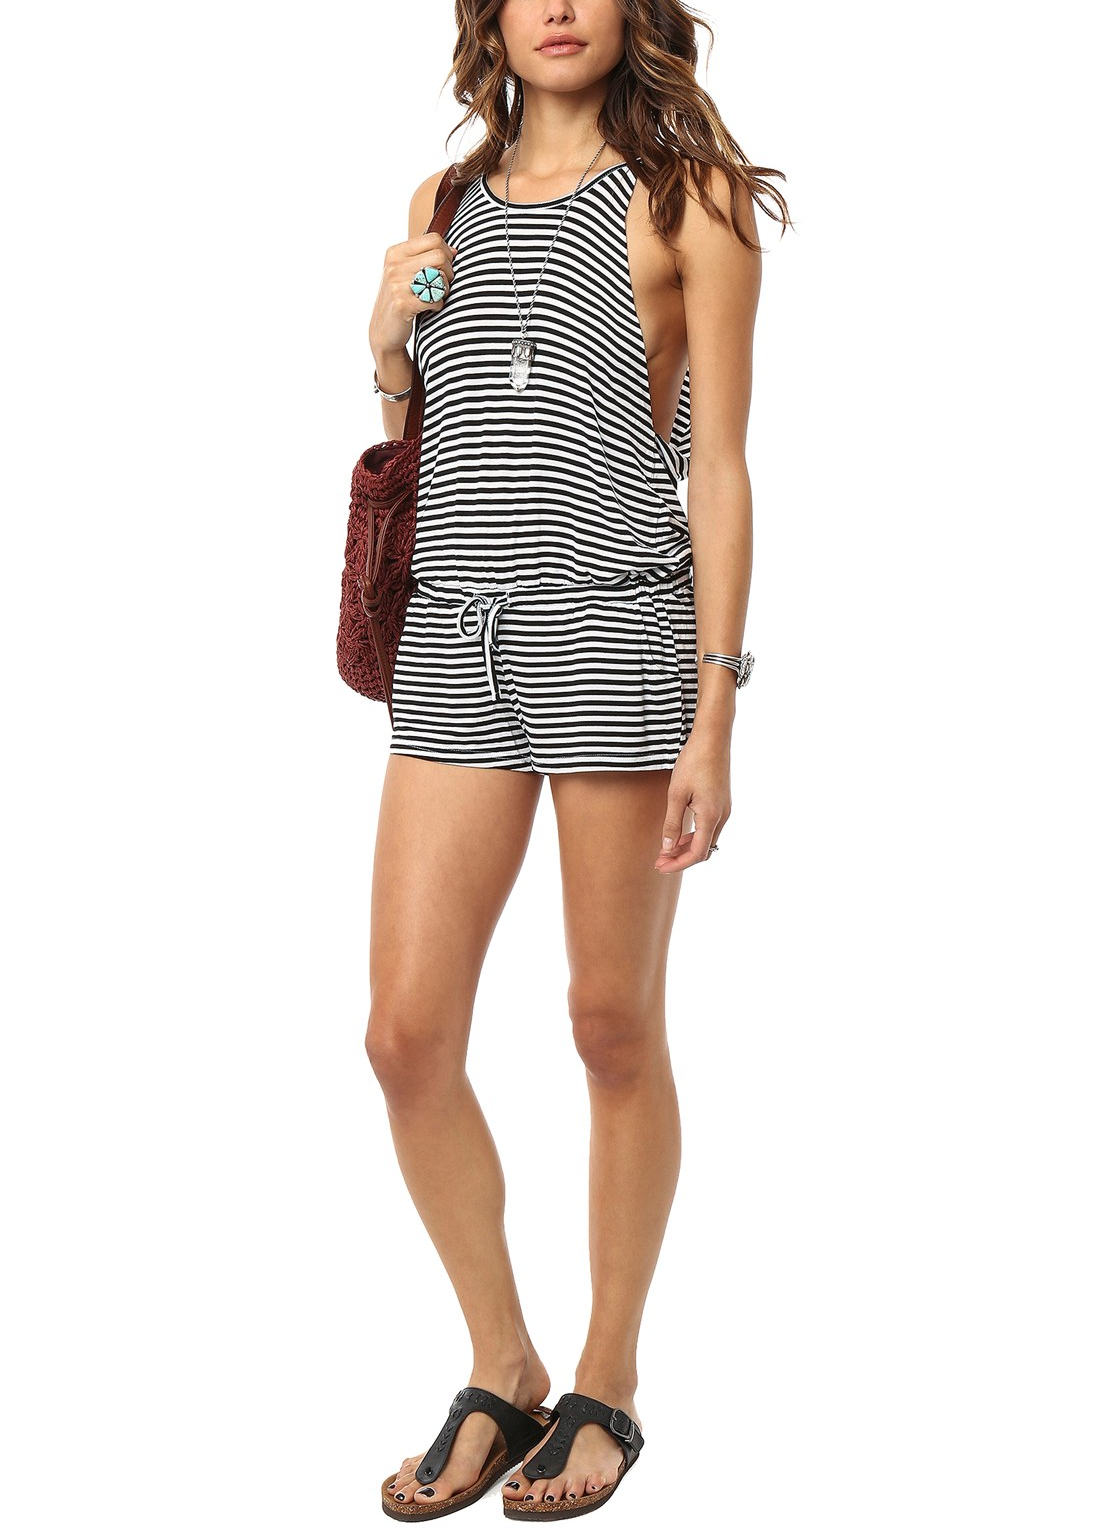 85770b983426 Loving this airy black and white striped romper paired with sandals for an  easy ensemble that is perfect for hitting the beach.